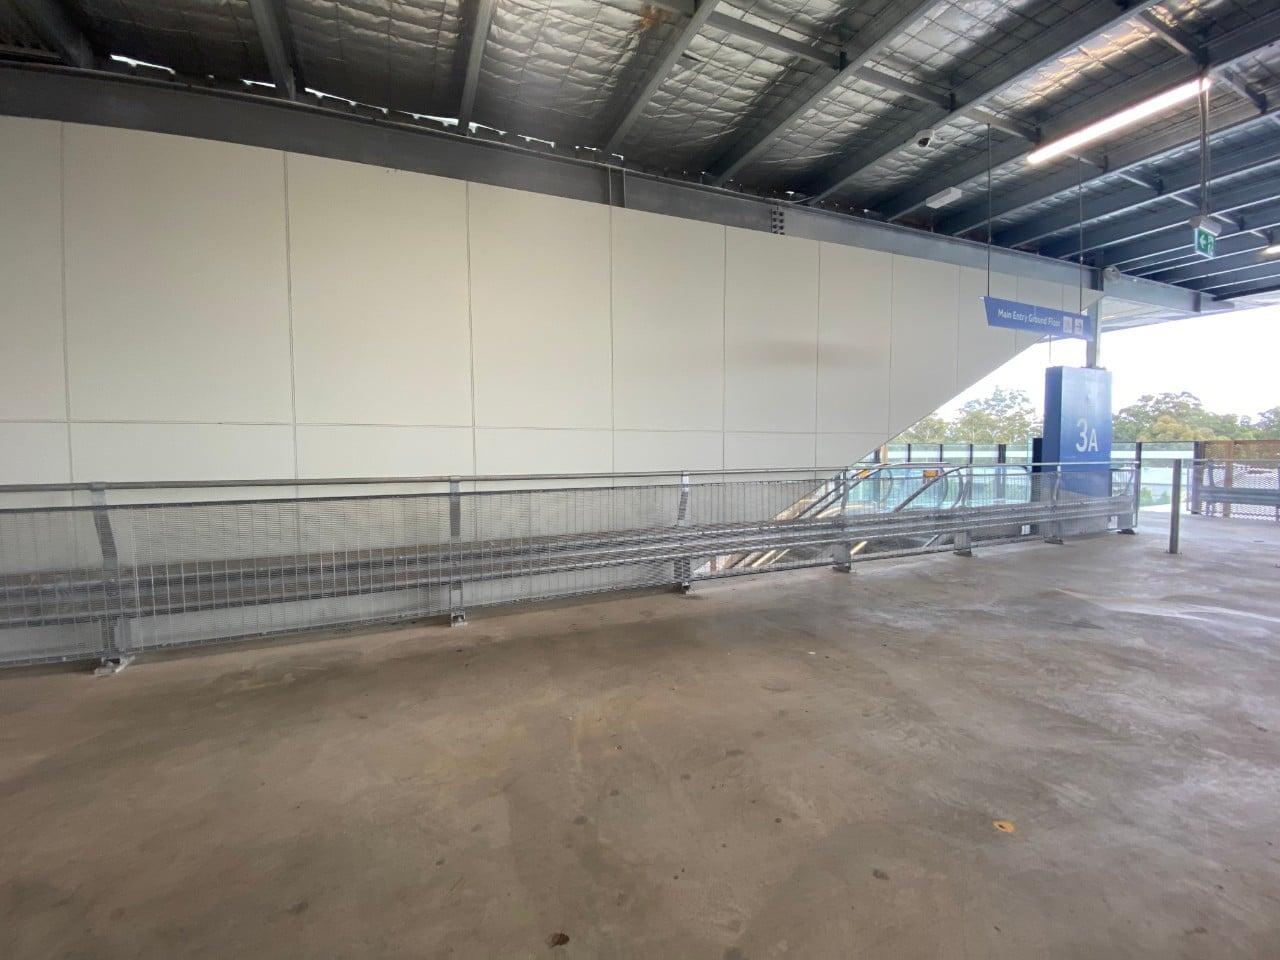 rhino stop type 4 safety barrier installation at rooty hill car park